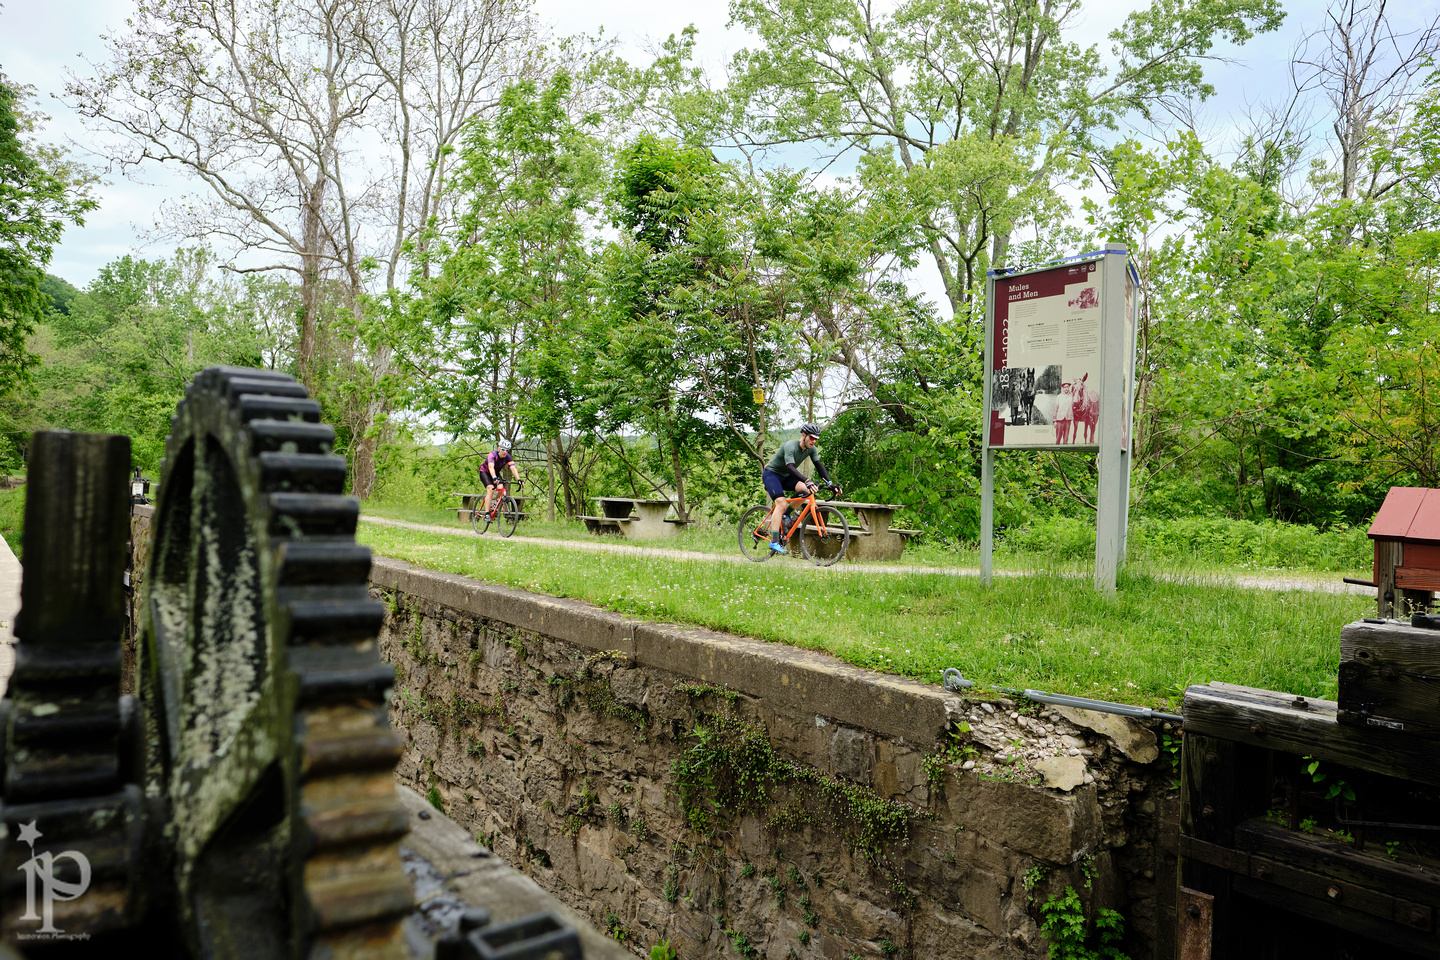 Riders rolled along the locks of the Delaware Canal Path, a sixty-mile path from Easton, PA, to Bristol, PA. Photo credit  Jason Wood .